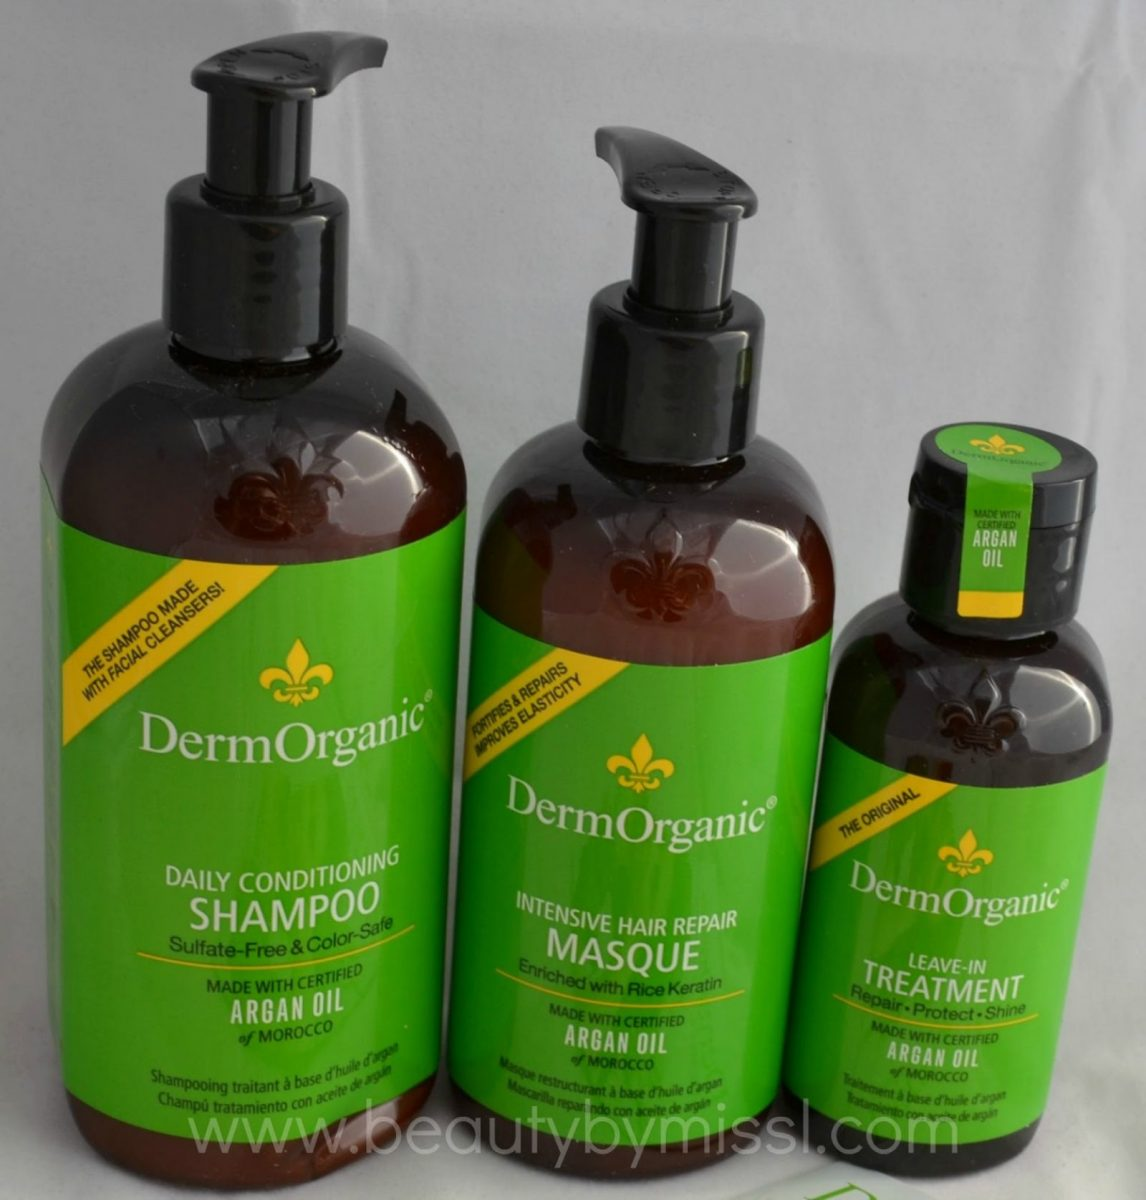 DermOrganic hair care products